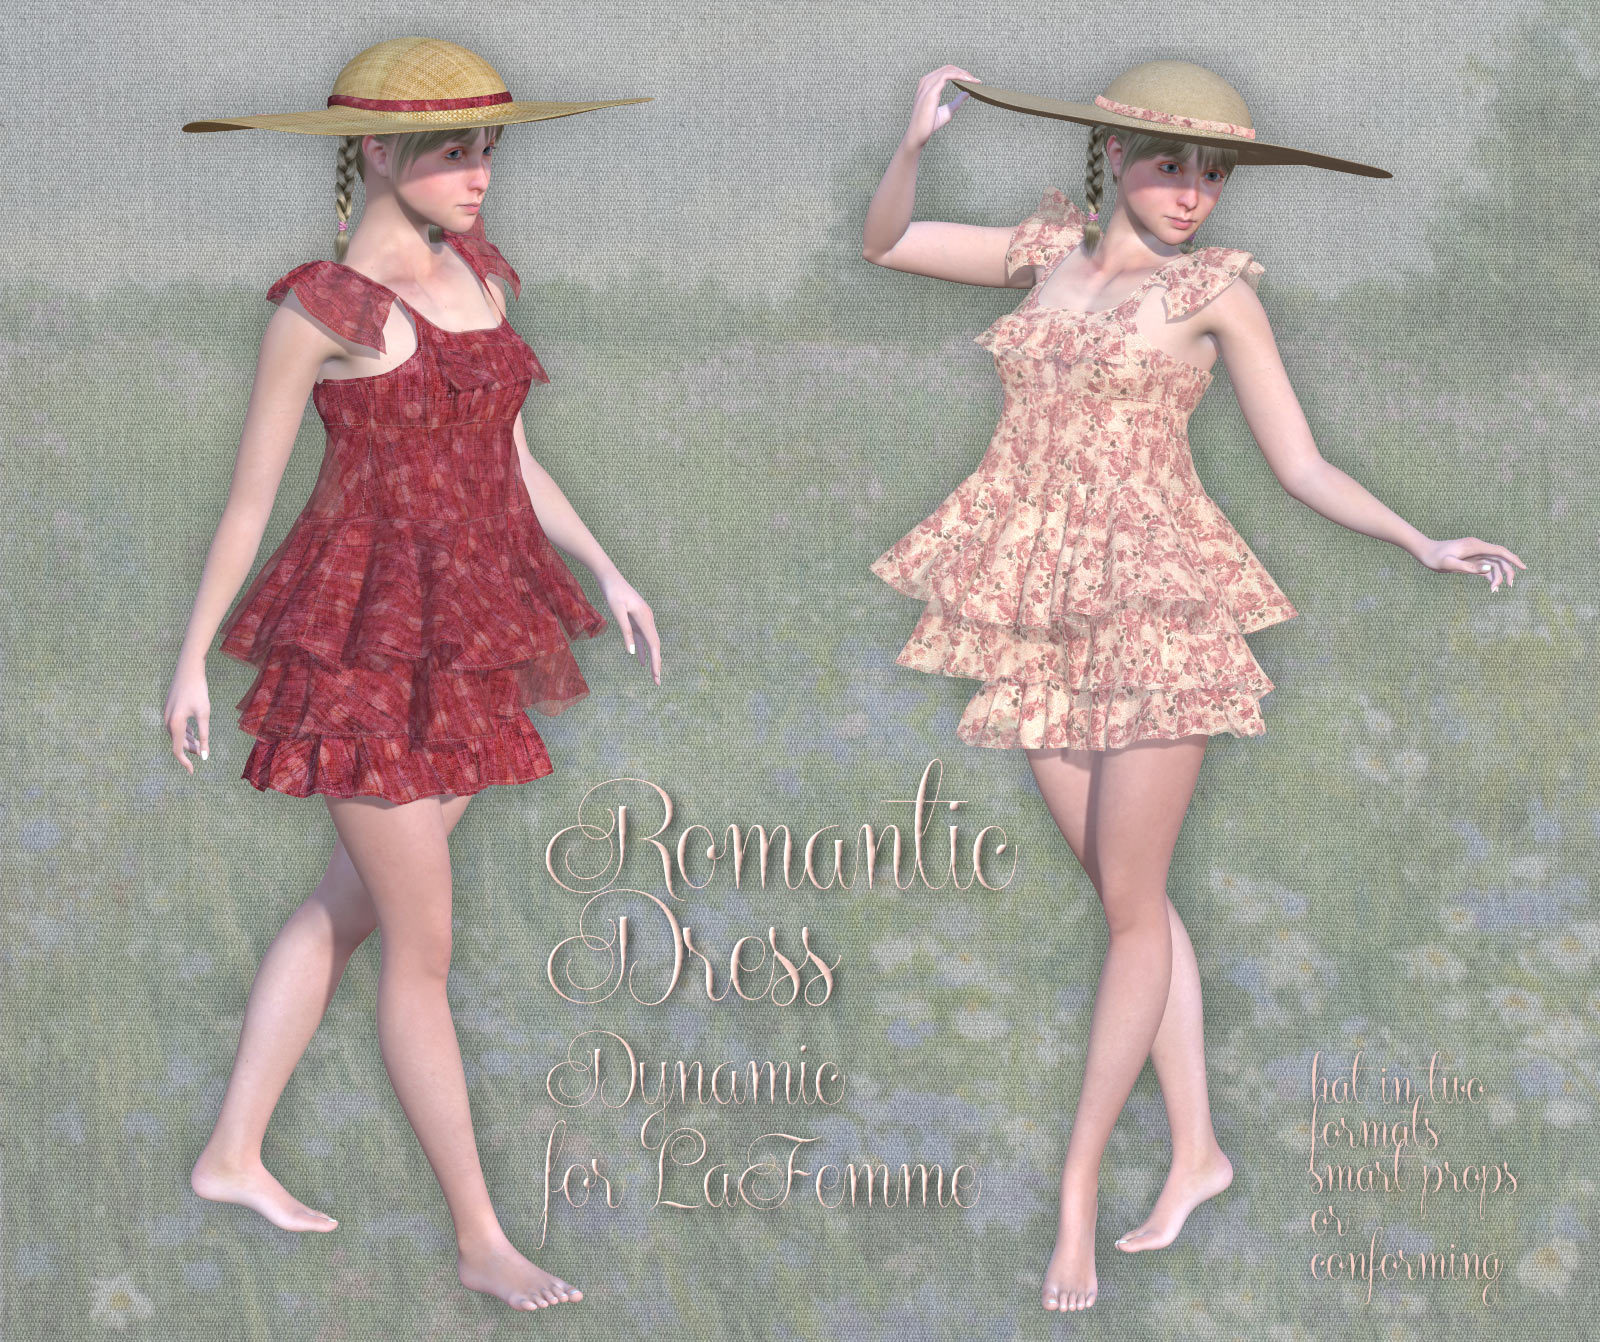 Romantic Dress for LaFemme